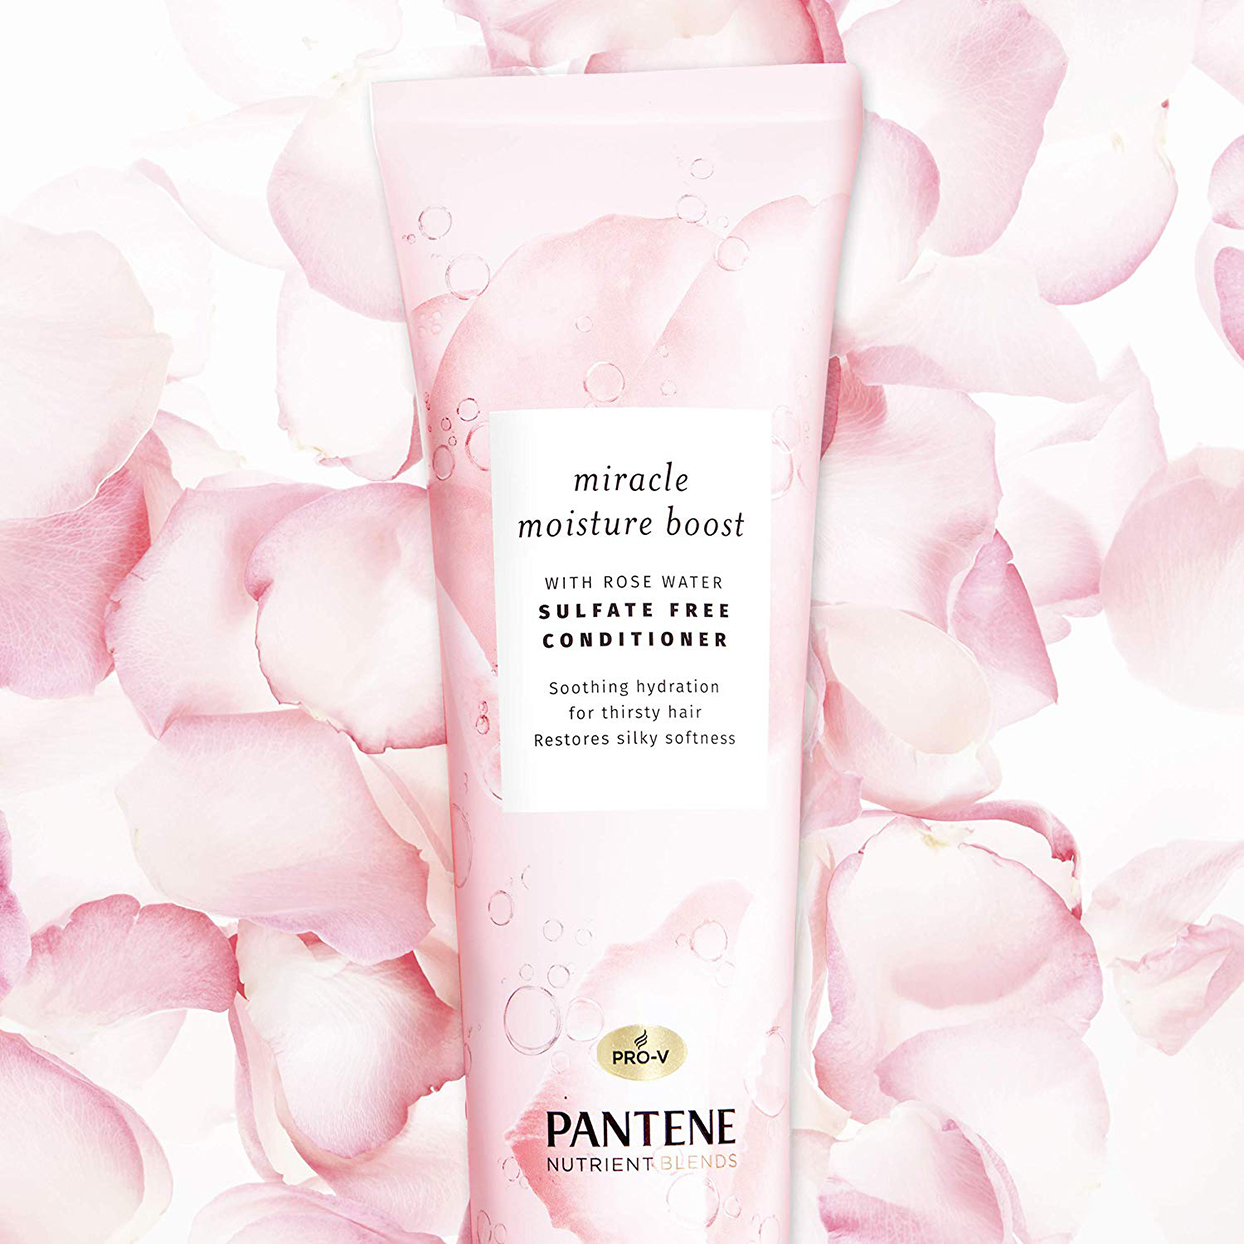 Pantene Miracle Moisture Boost Conditioner With Rose Water